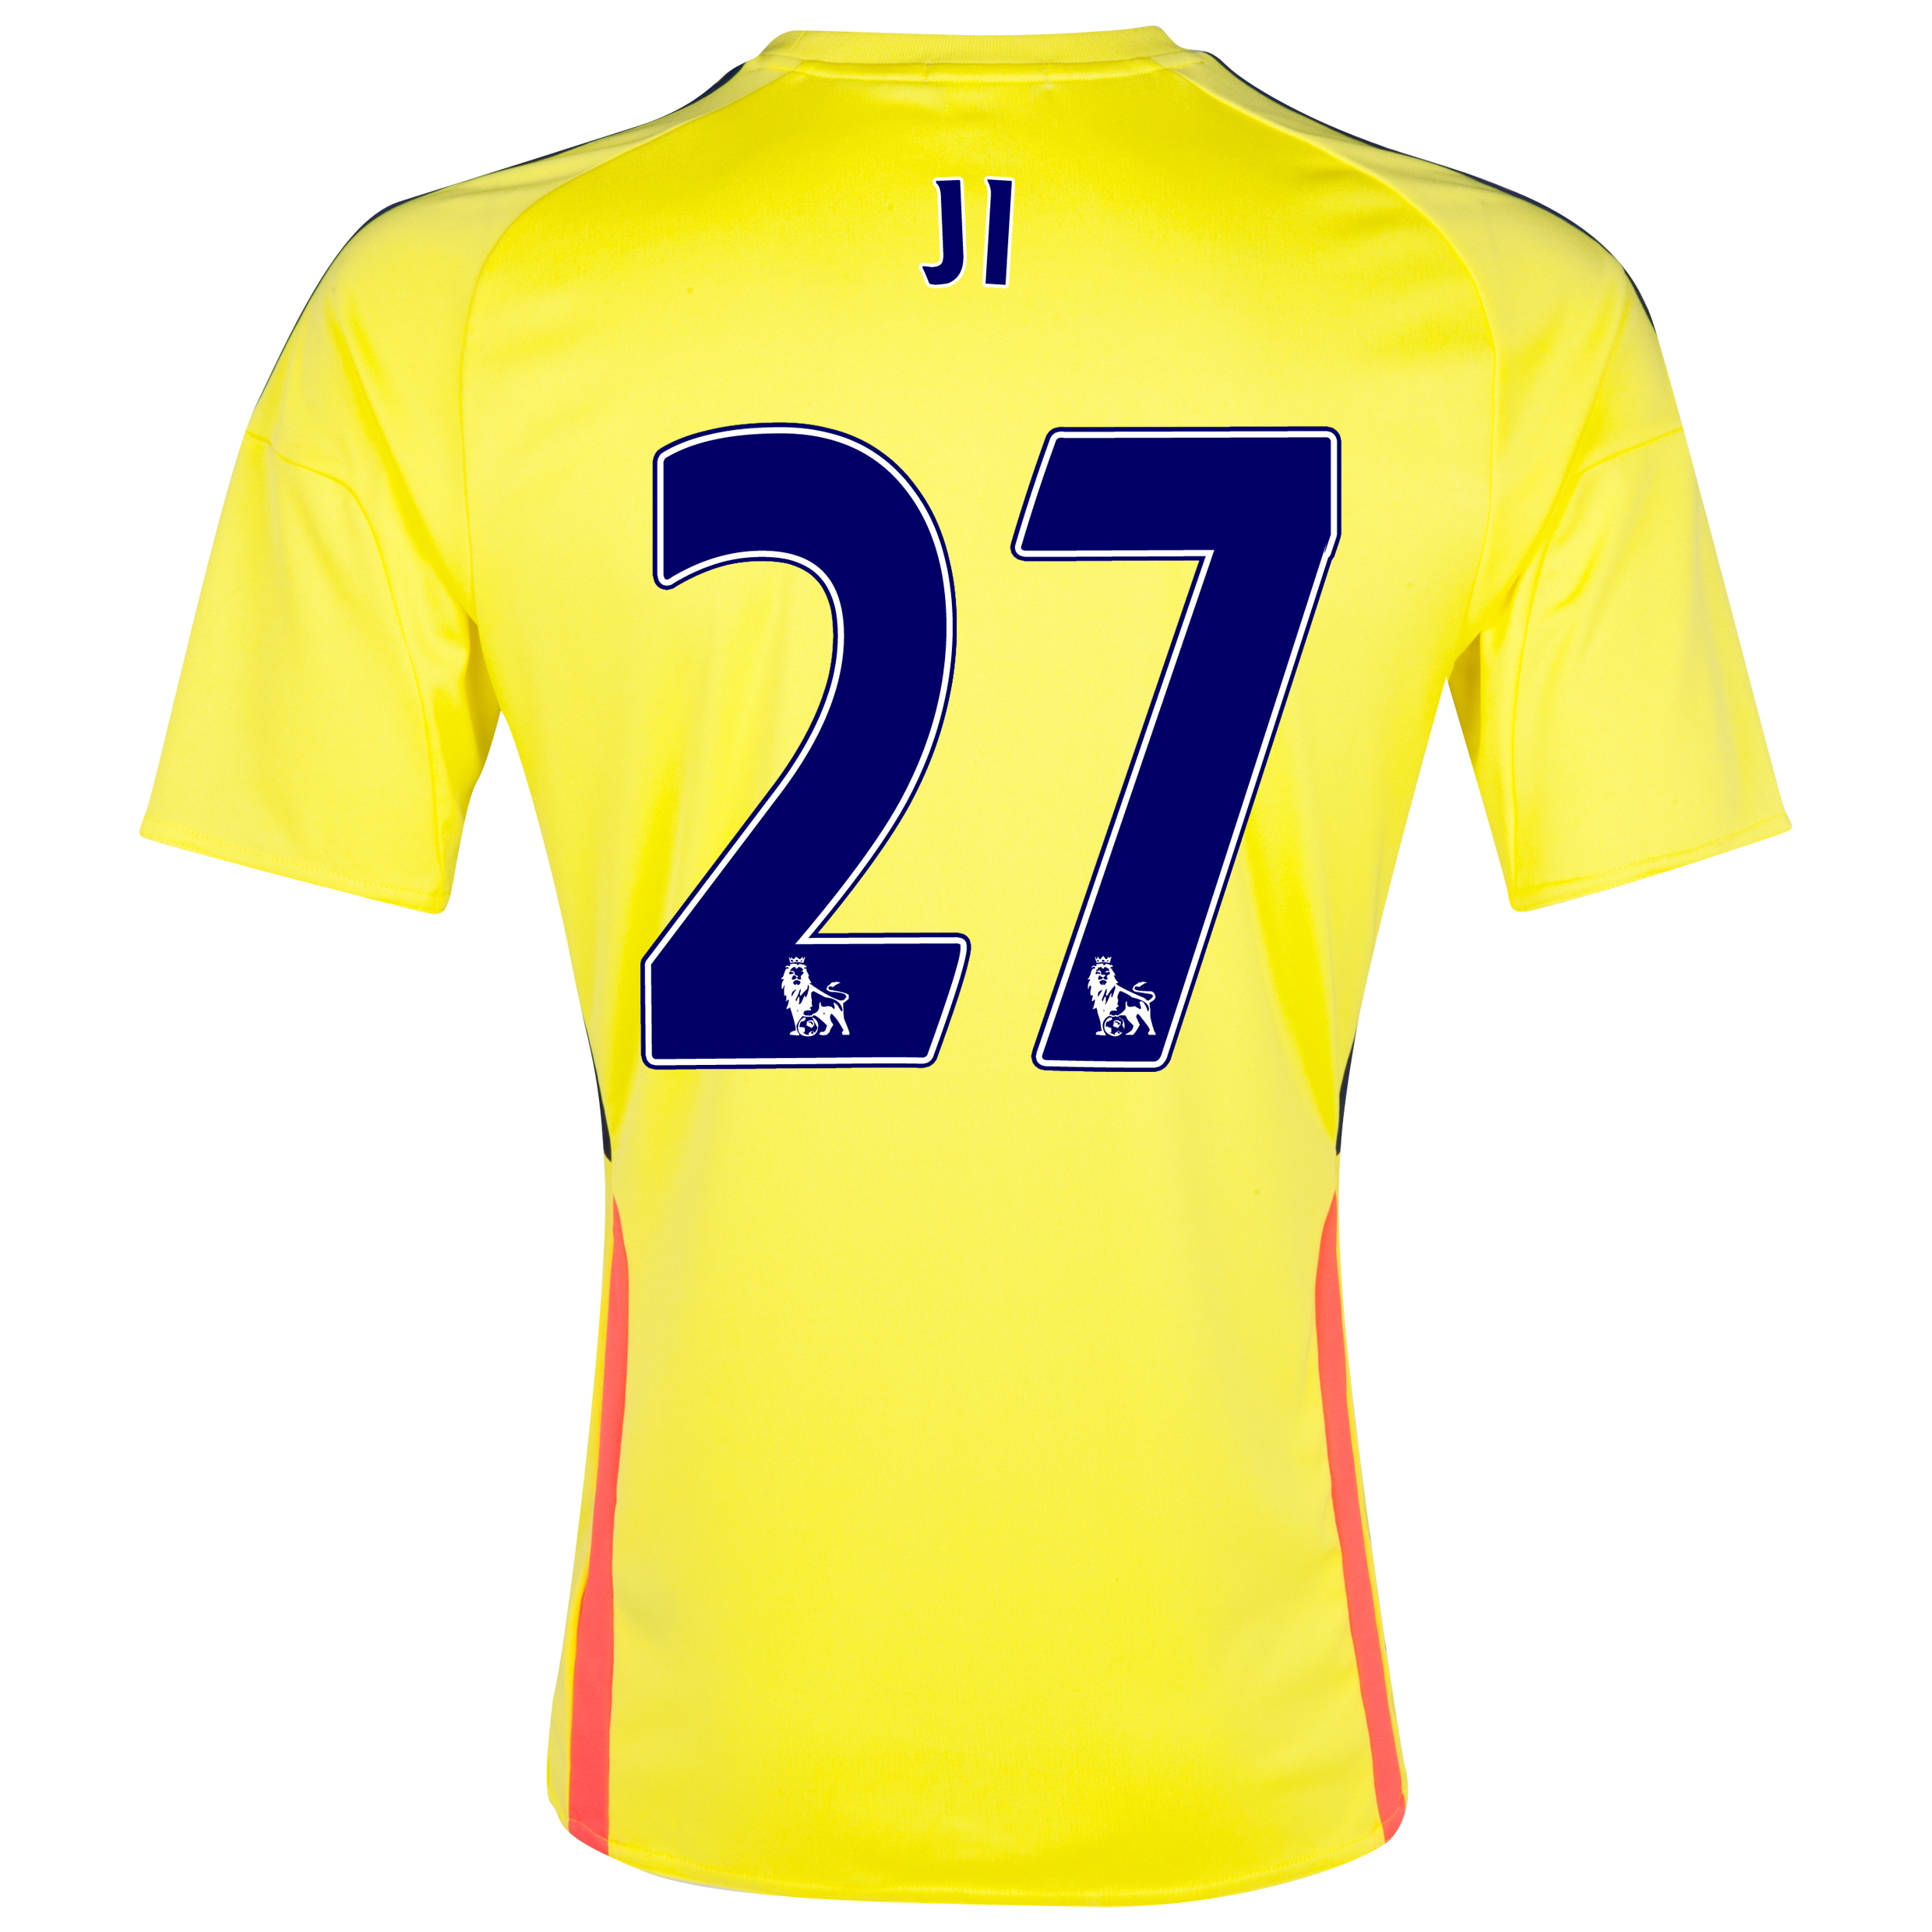 Sunderland Away Shirt 2013/14 with Ji 27 printing